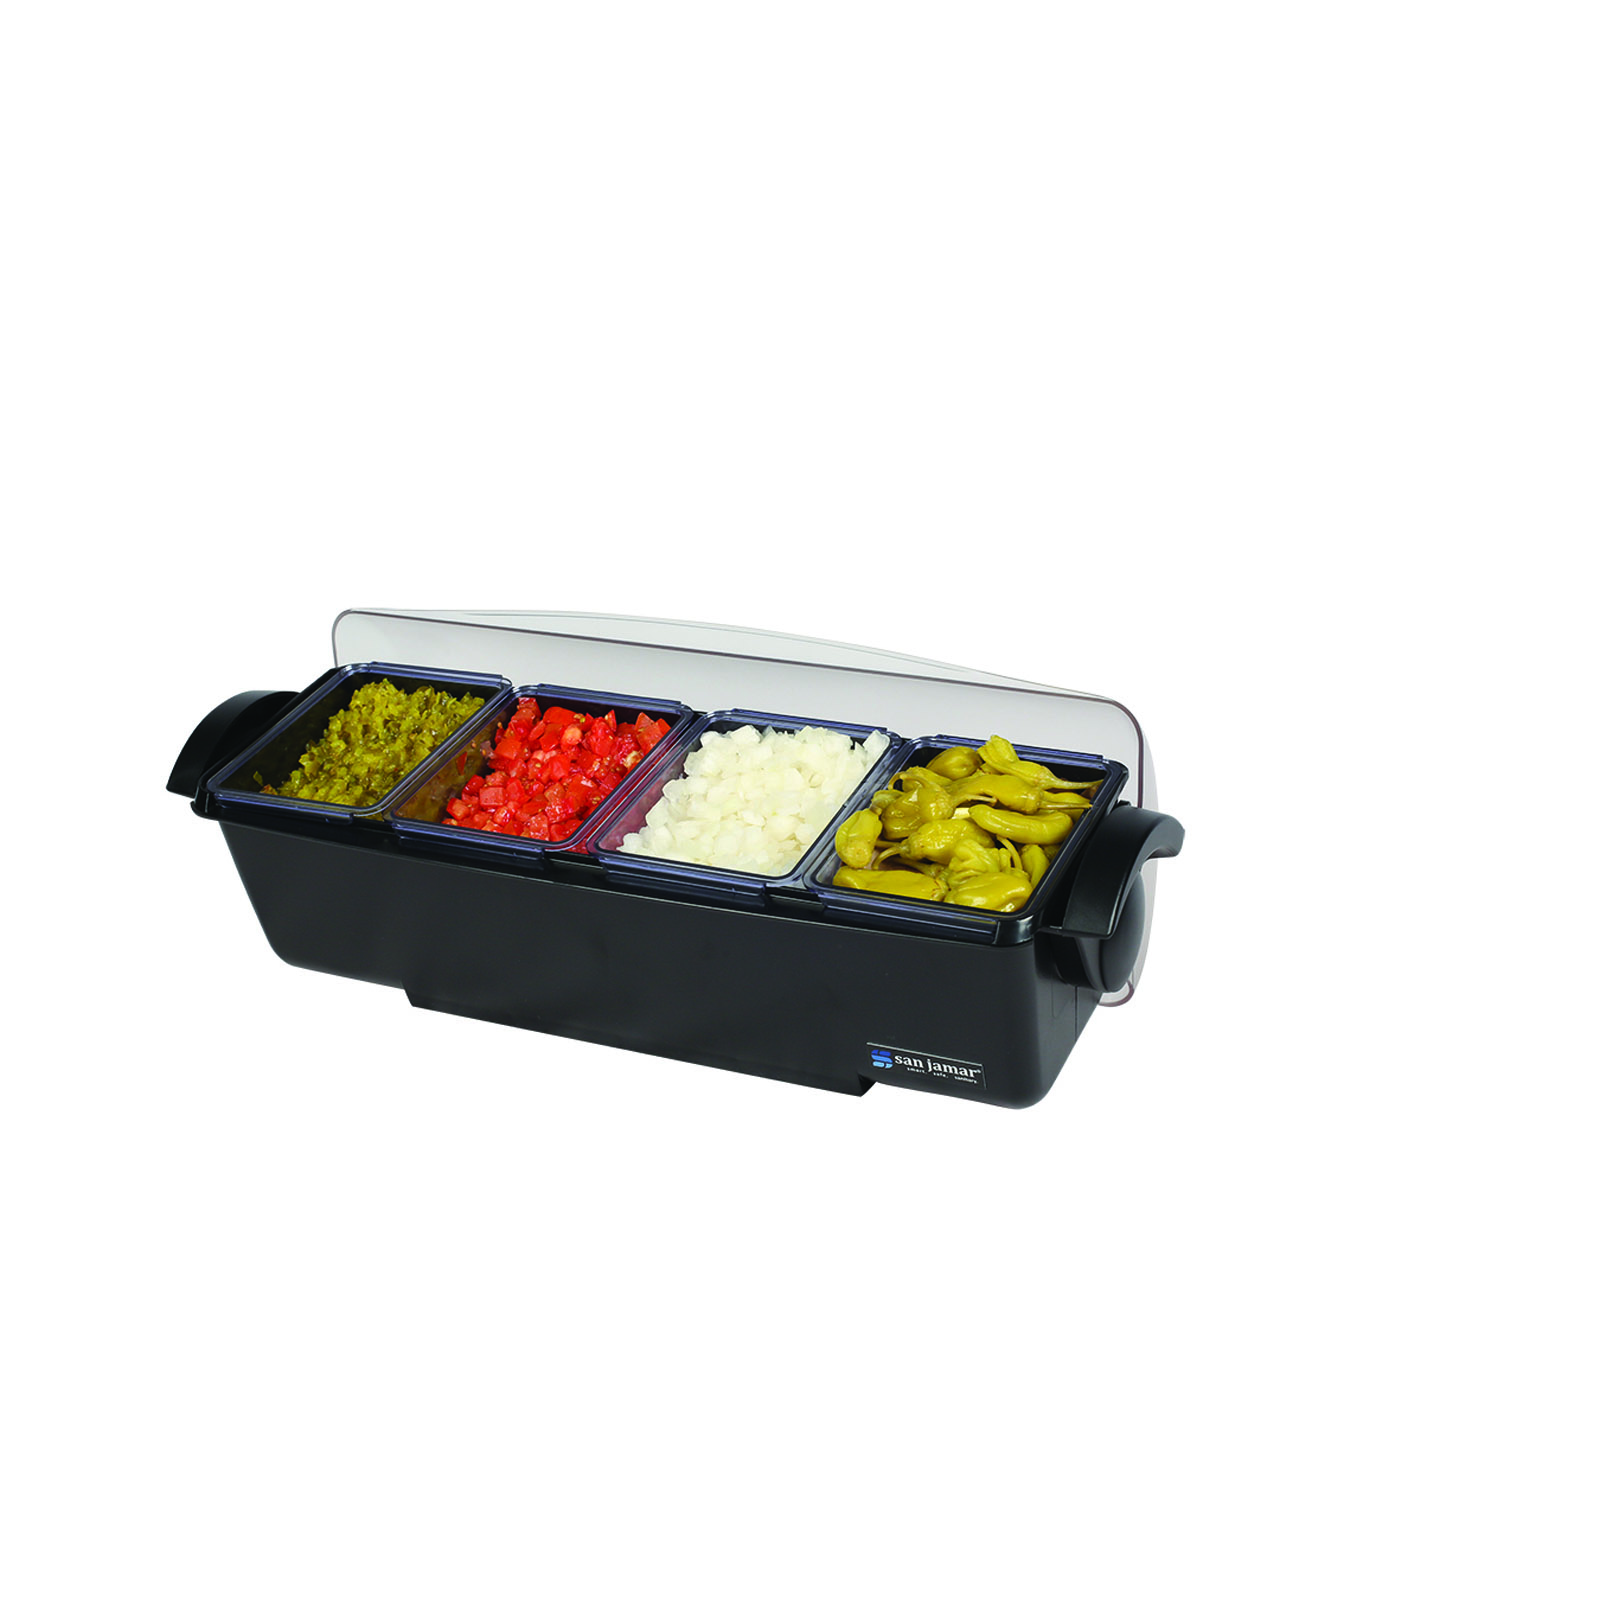 San Jamar BD4004 bar condiment holder